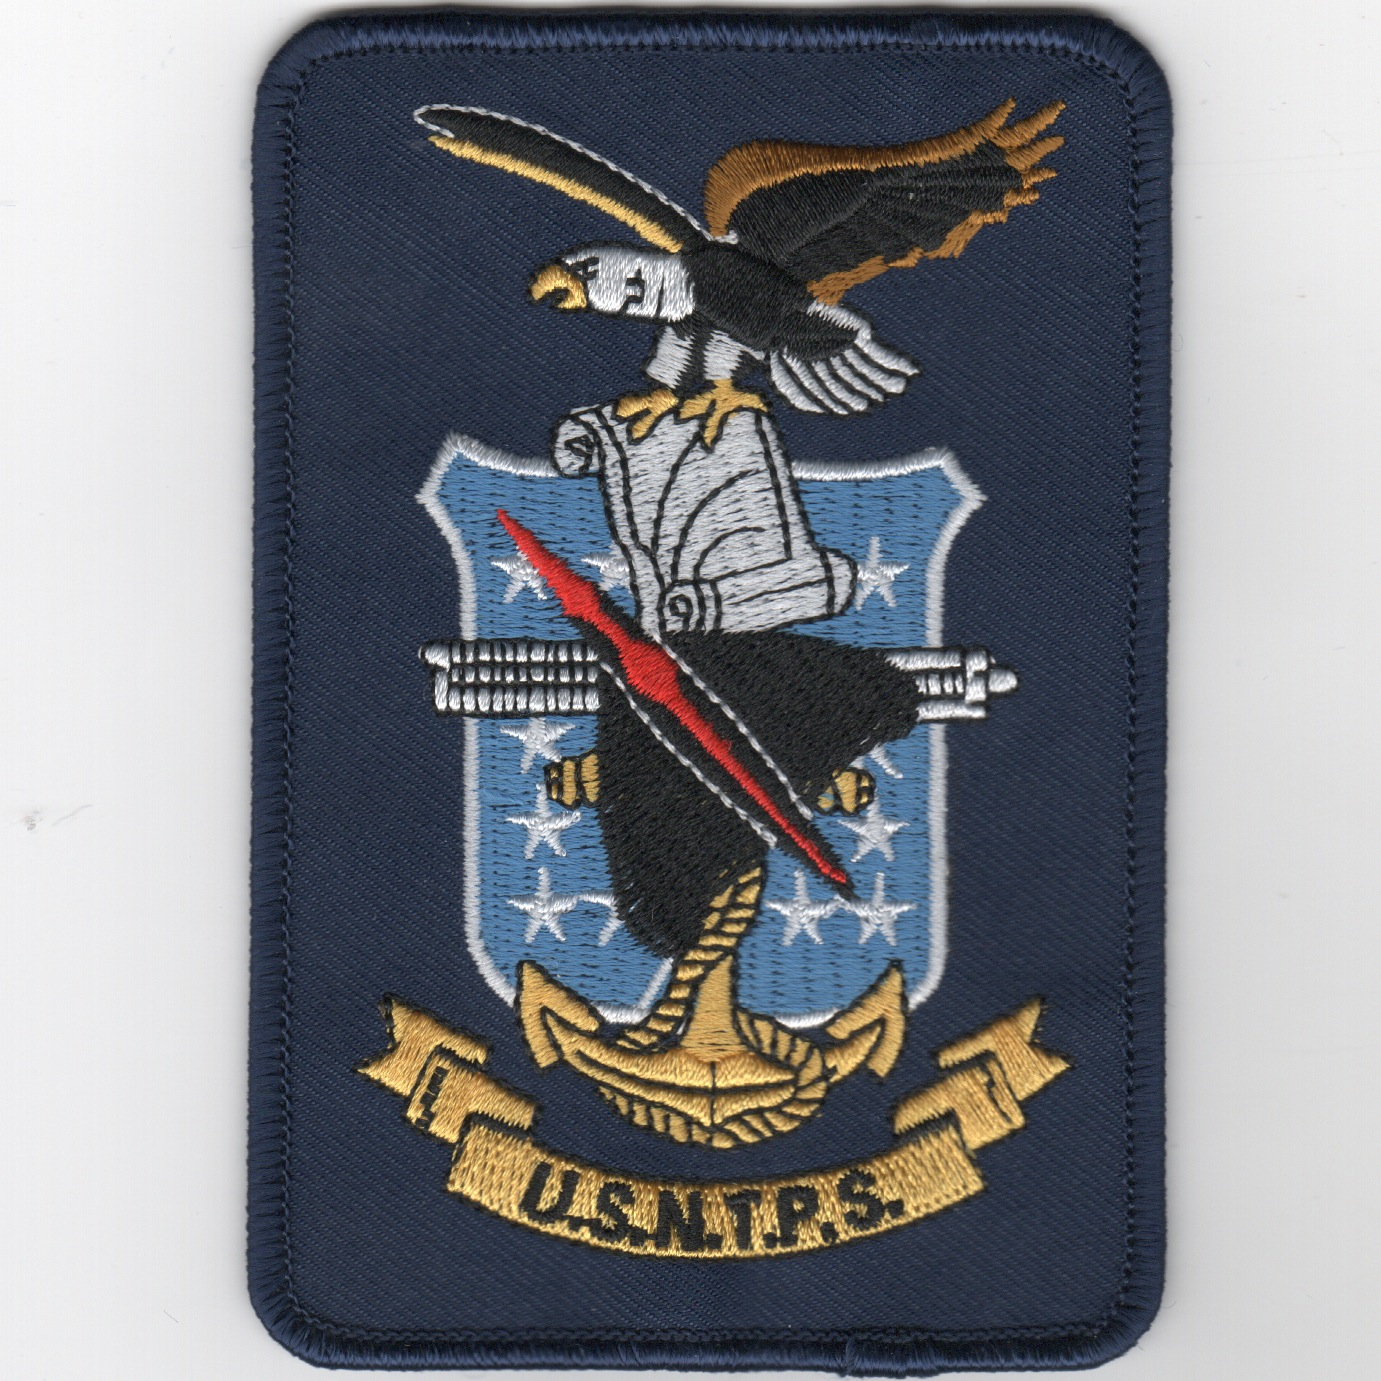 ... Naval Aviation Schools Command. Picture of the Executive Officer